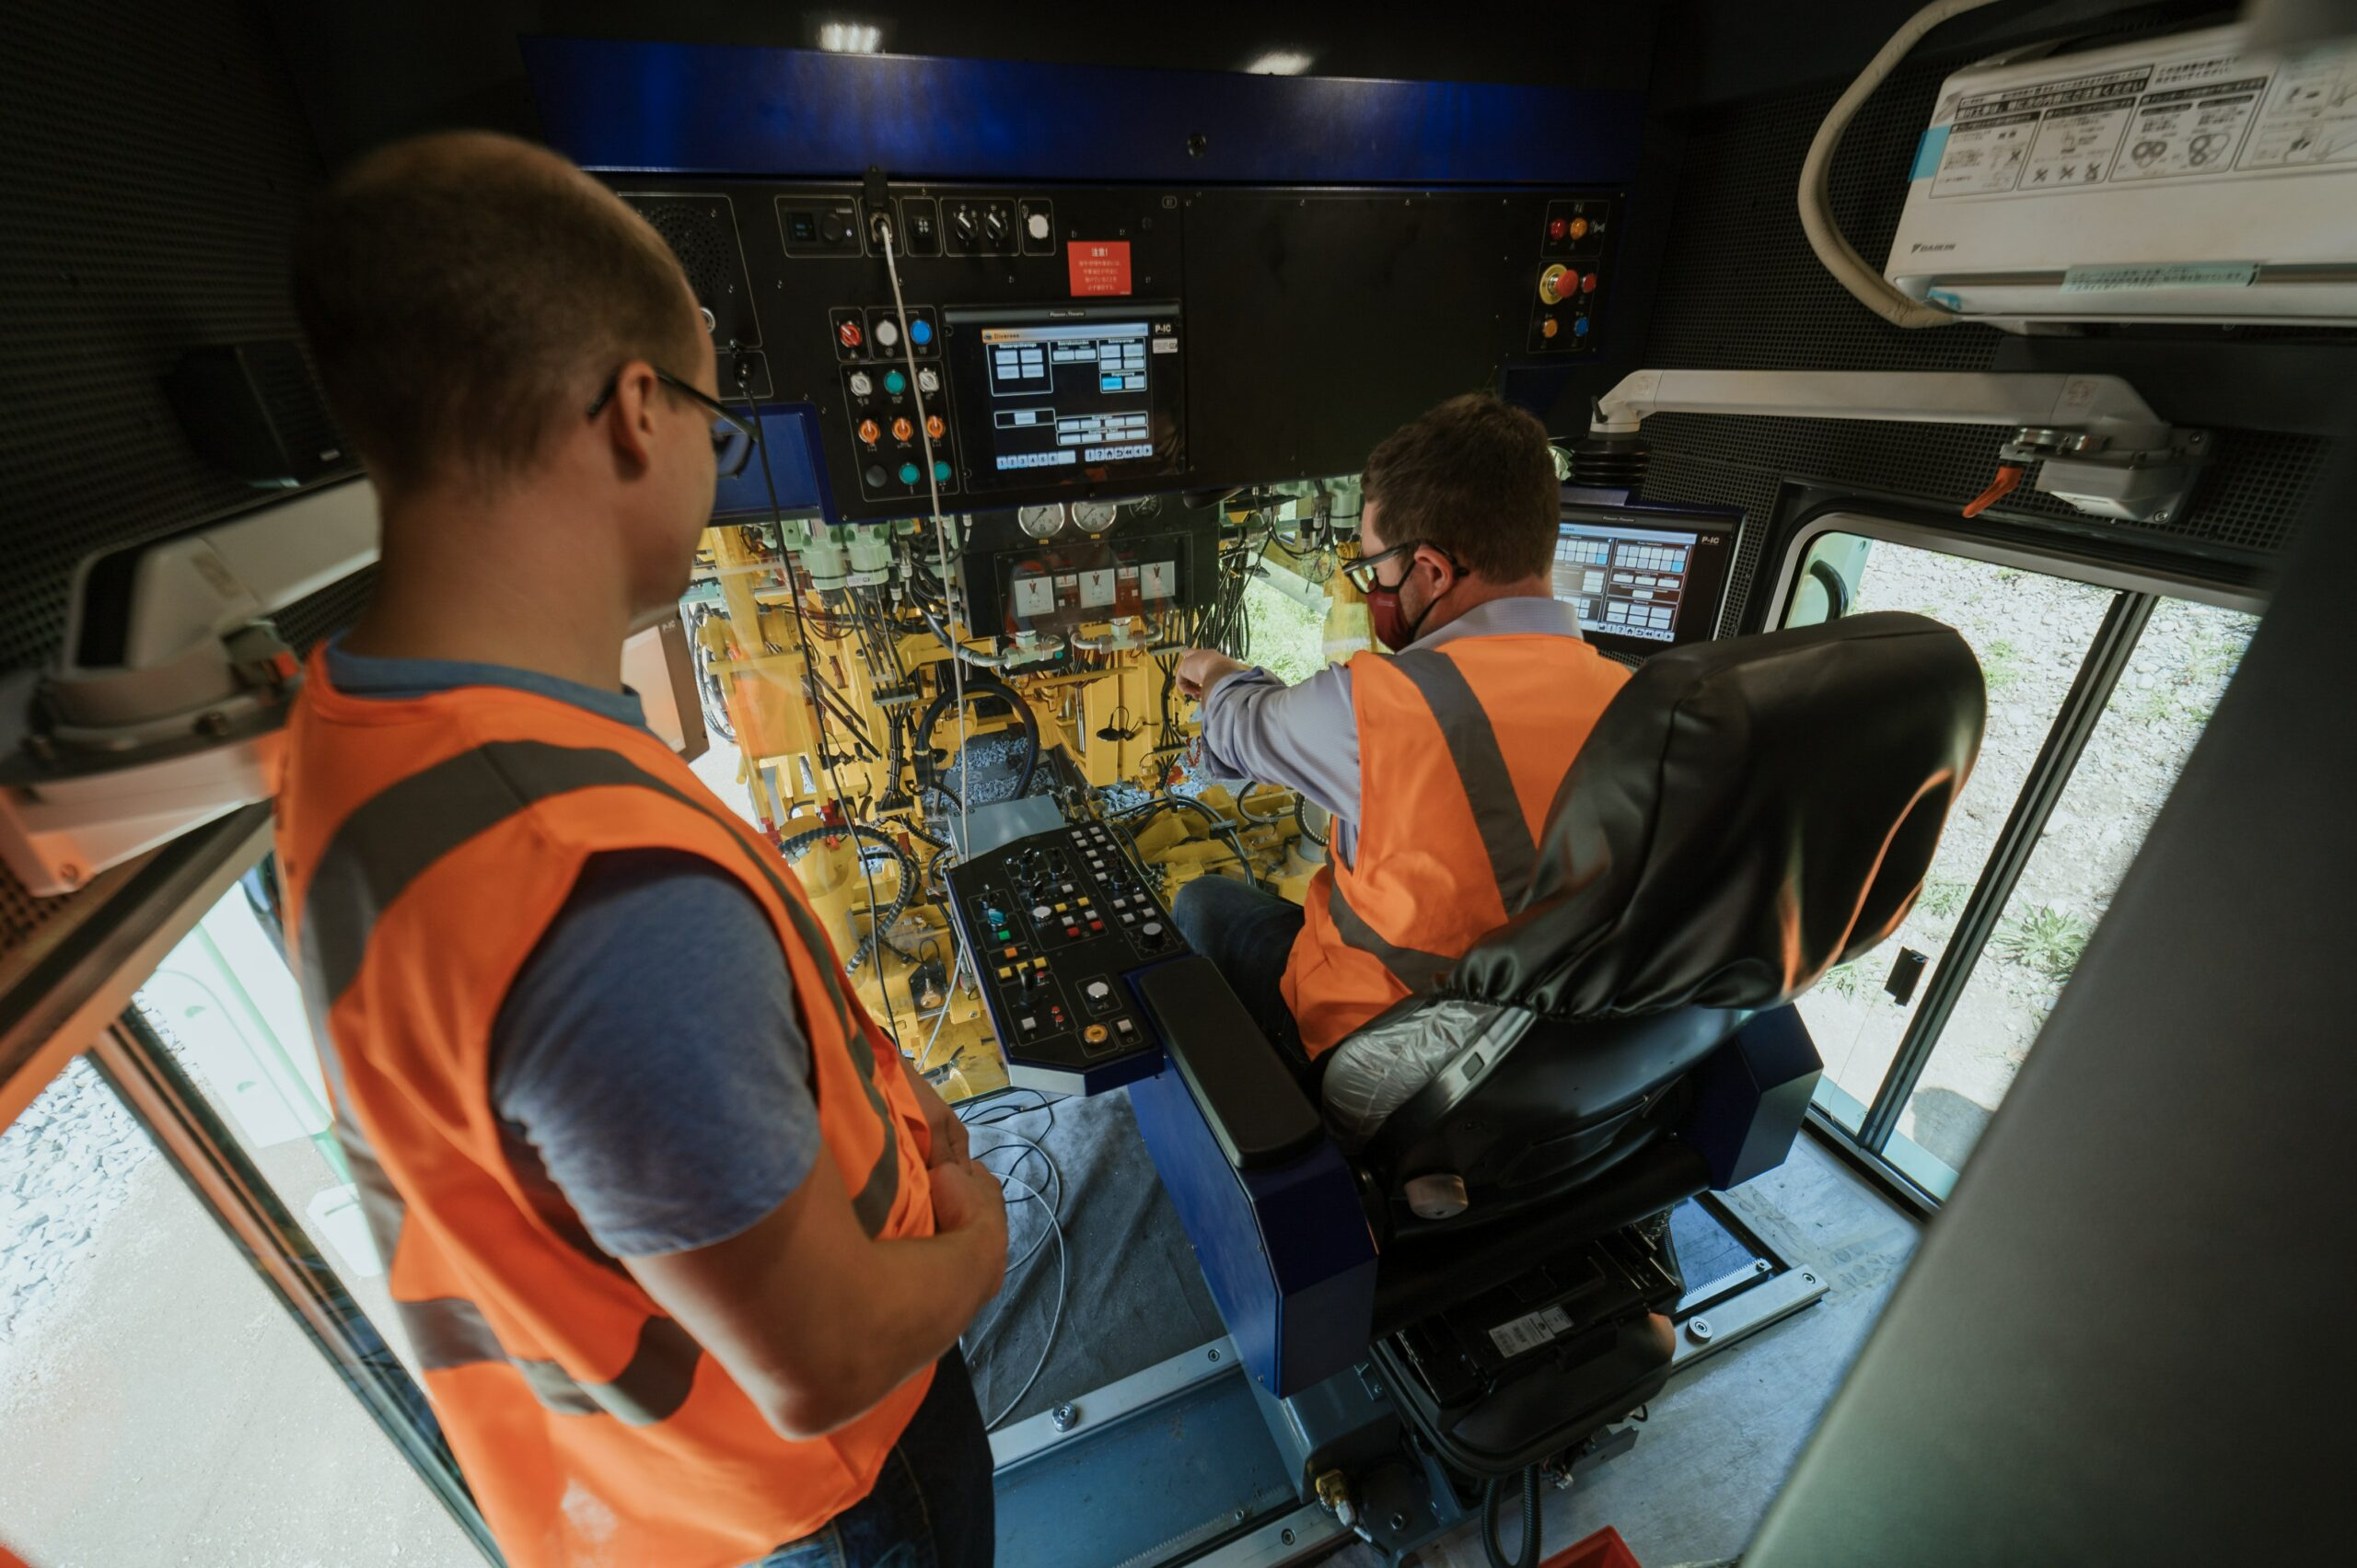 Get Enthusiastic about digitization in the railway world